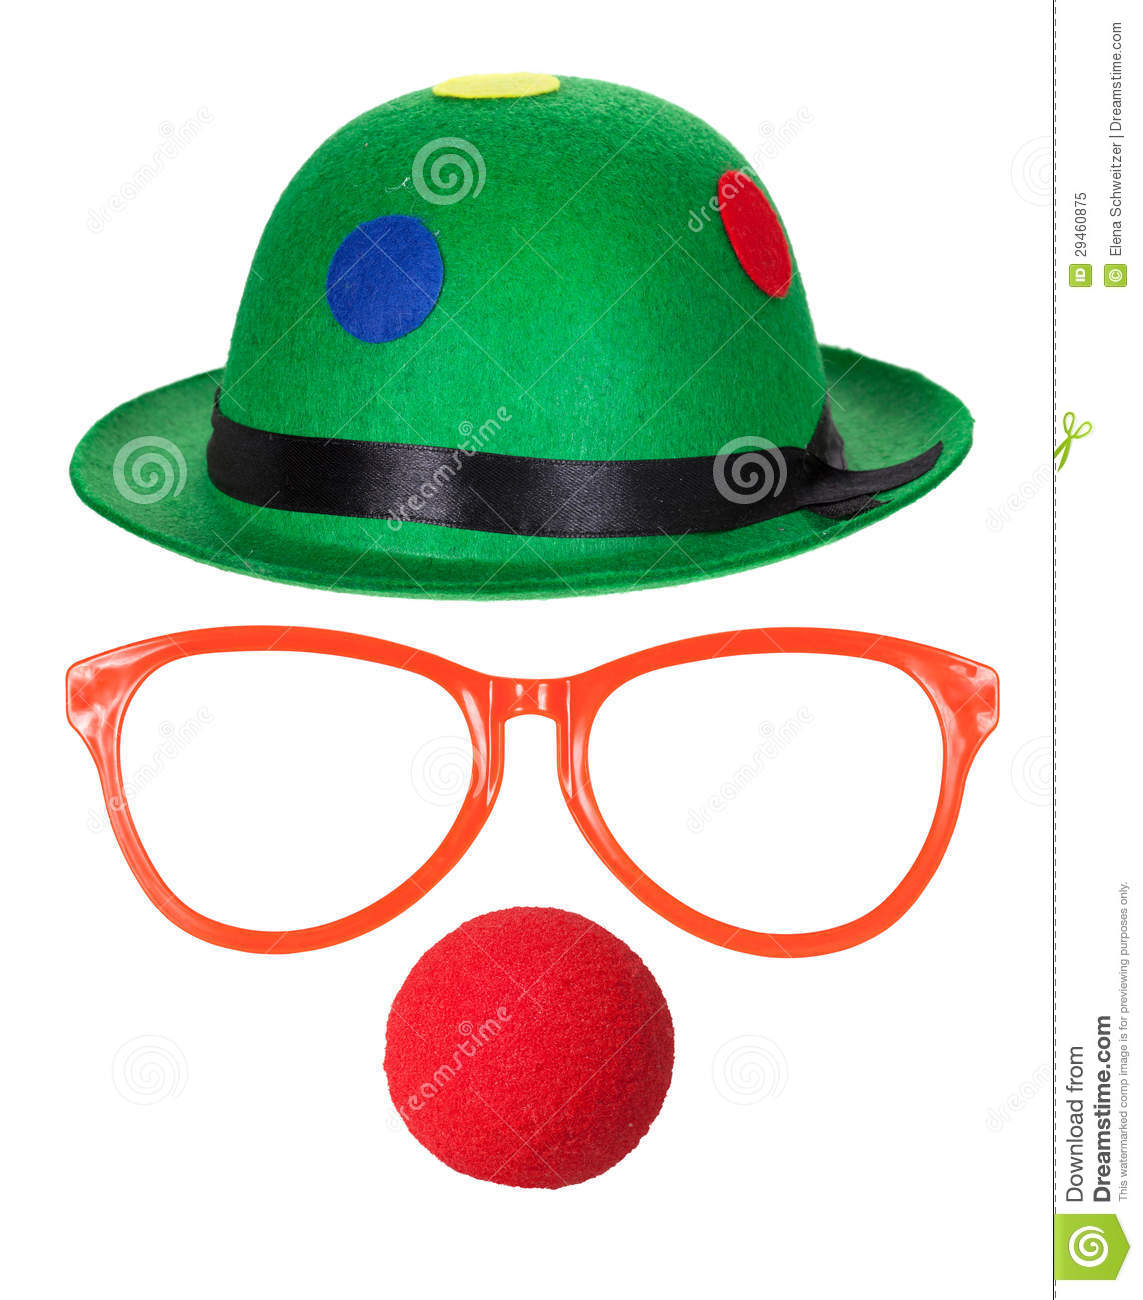 Clown Hat With Glasses And Red Nose Royalty Free Stock Photo - Image ...